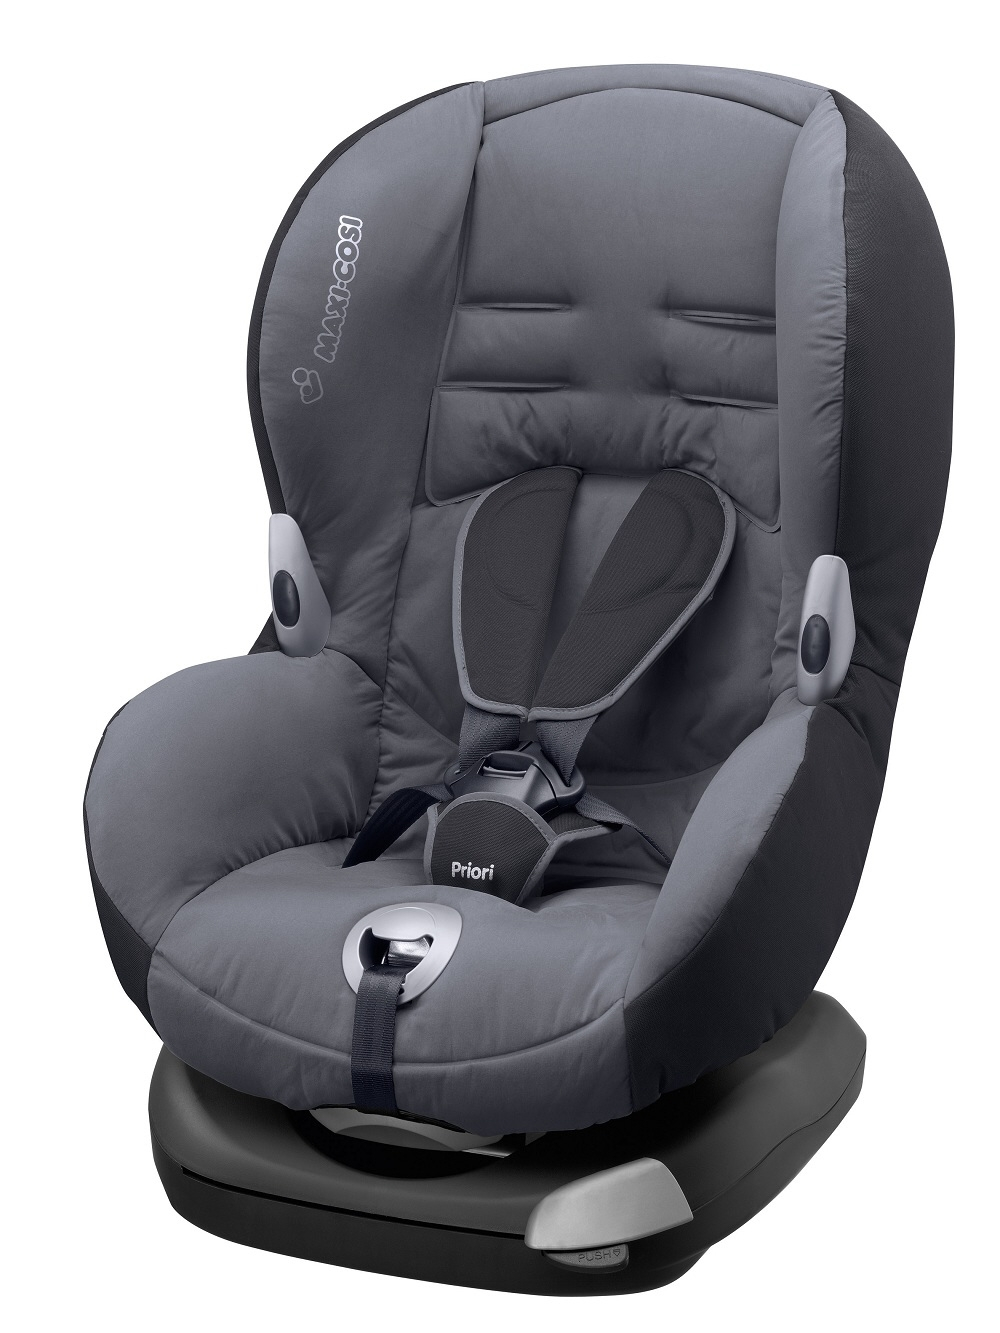 maxi cosi child car seat priori xp 2015 solid grey buy. Black Bedroom Furniture Sets. Home Design Ideas